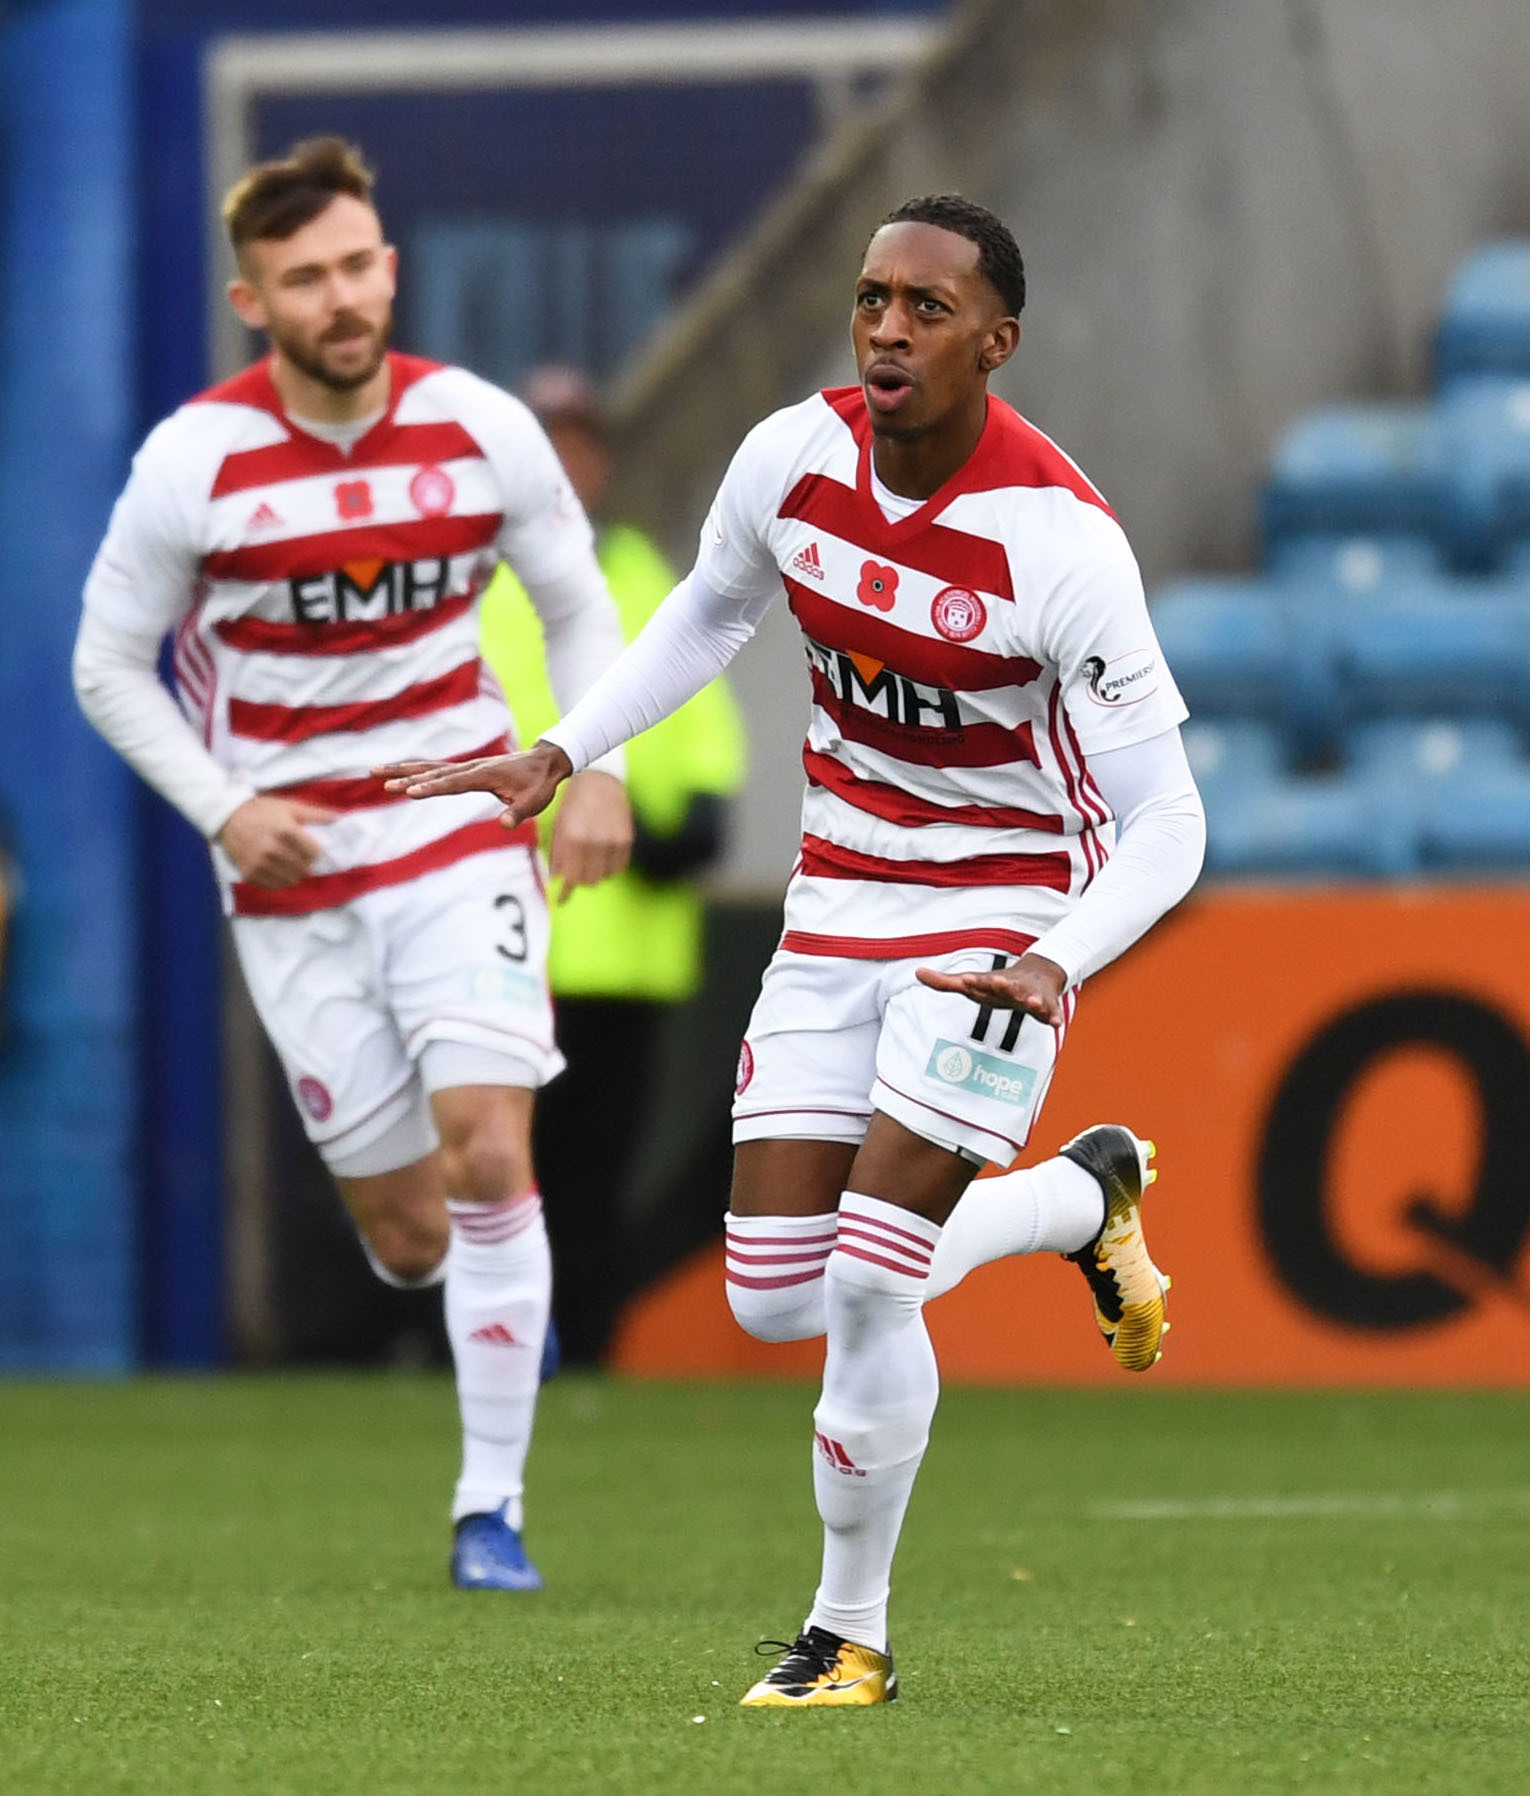 SPFL Premiership: Alessio angry, McInnes upbeat and May unfazed